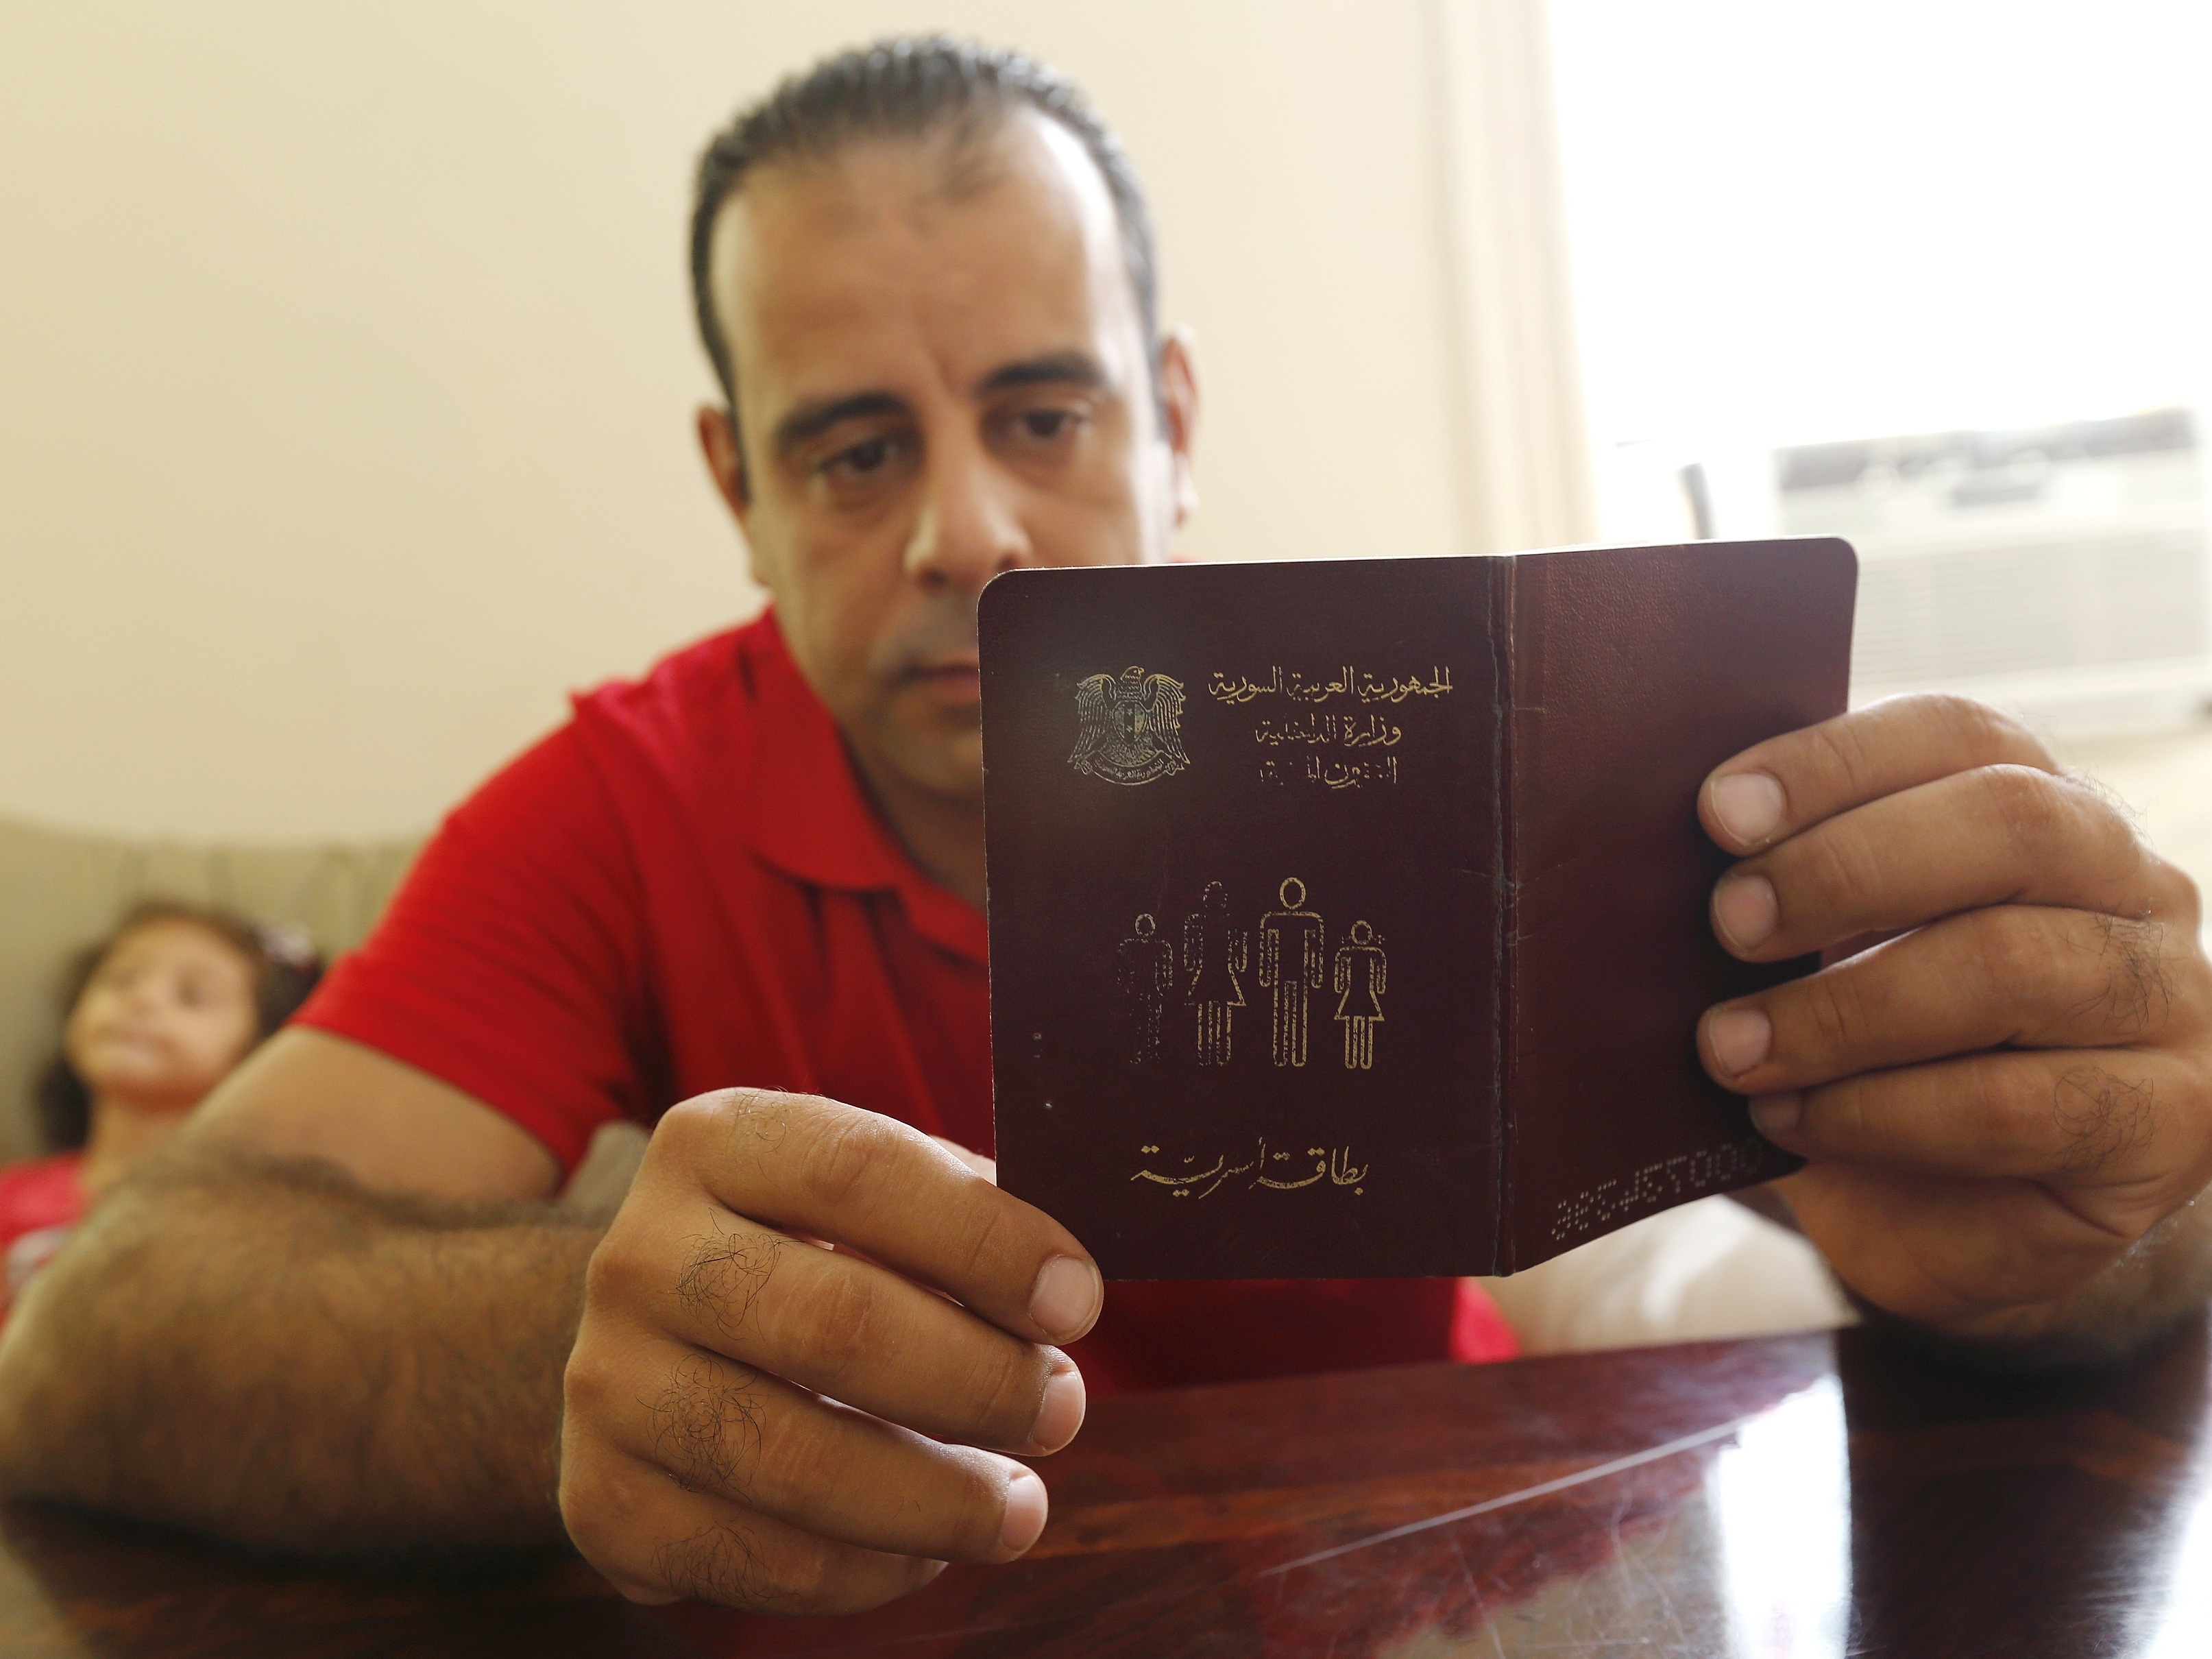 4 Things To Know About The Vetting Process For Syrian Refugees